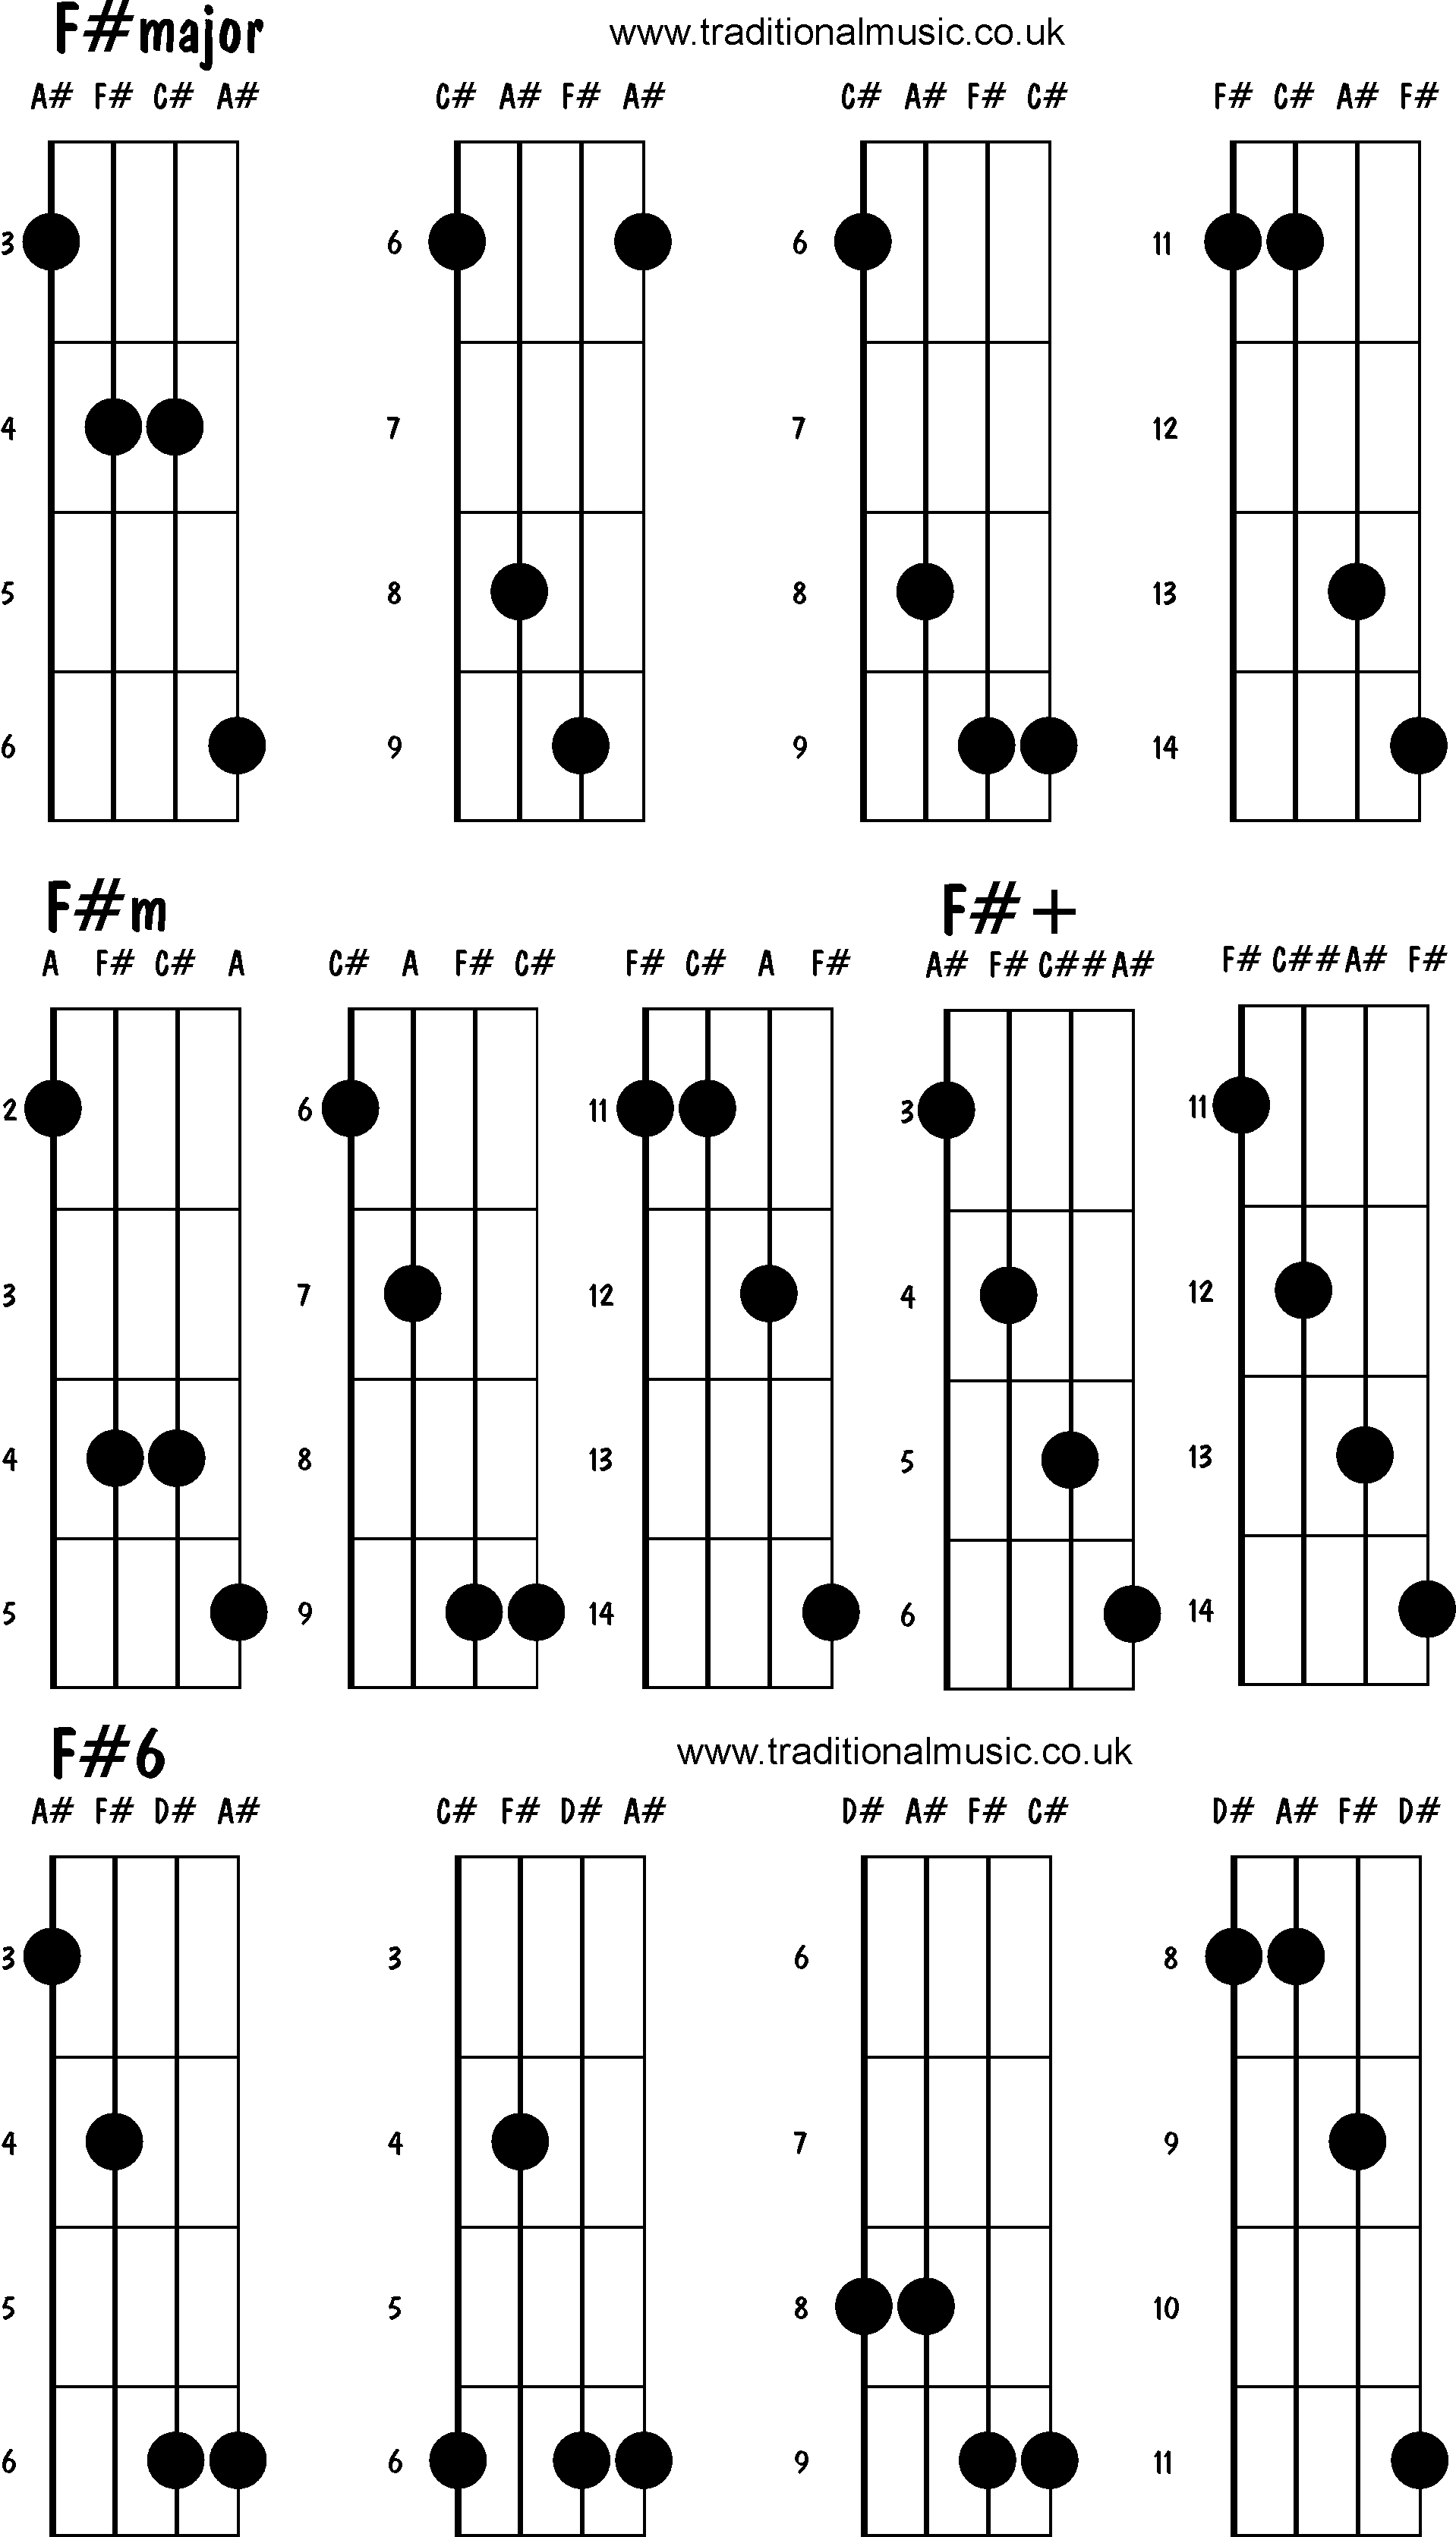 Mandolin Chords F mandolin chords advanced - f #major, f #m, f #+, f ...